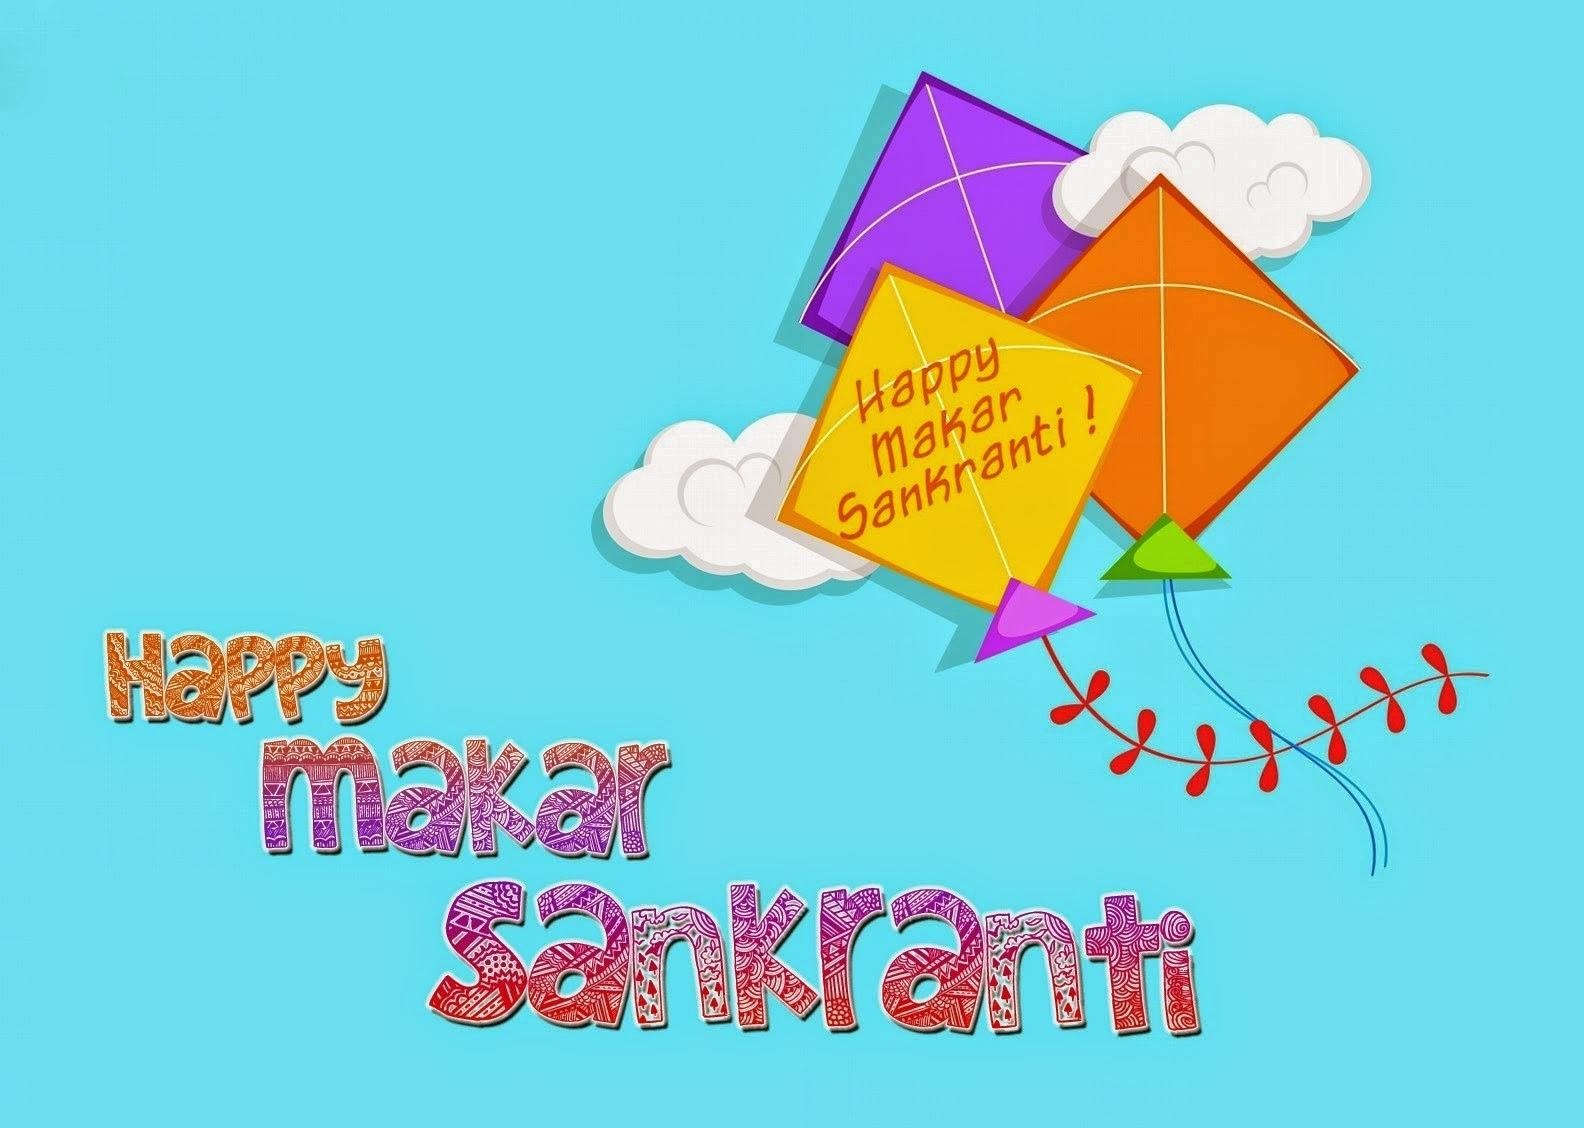 Makar Sankranti 2018 Image for Facebook